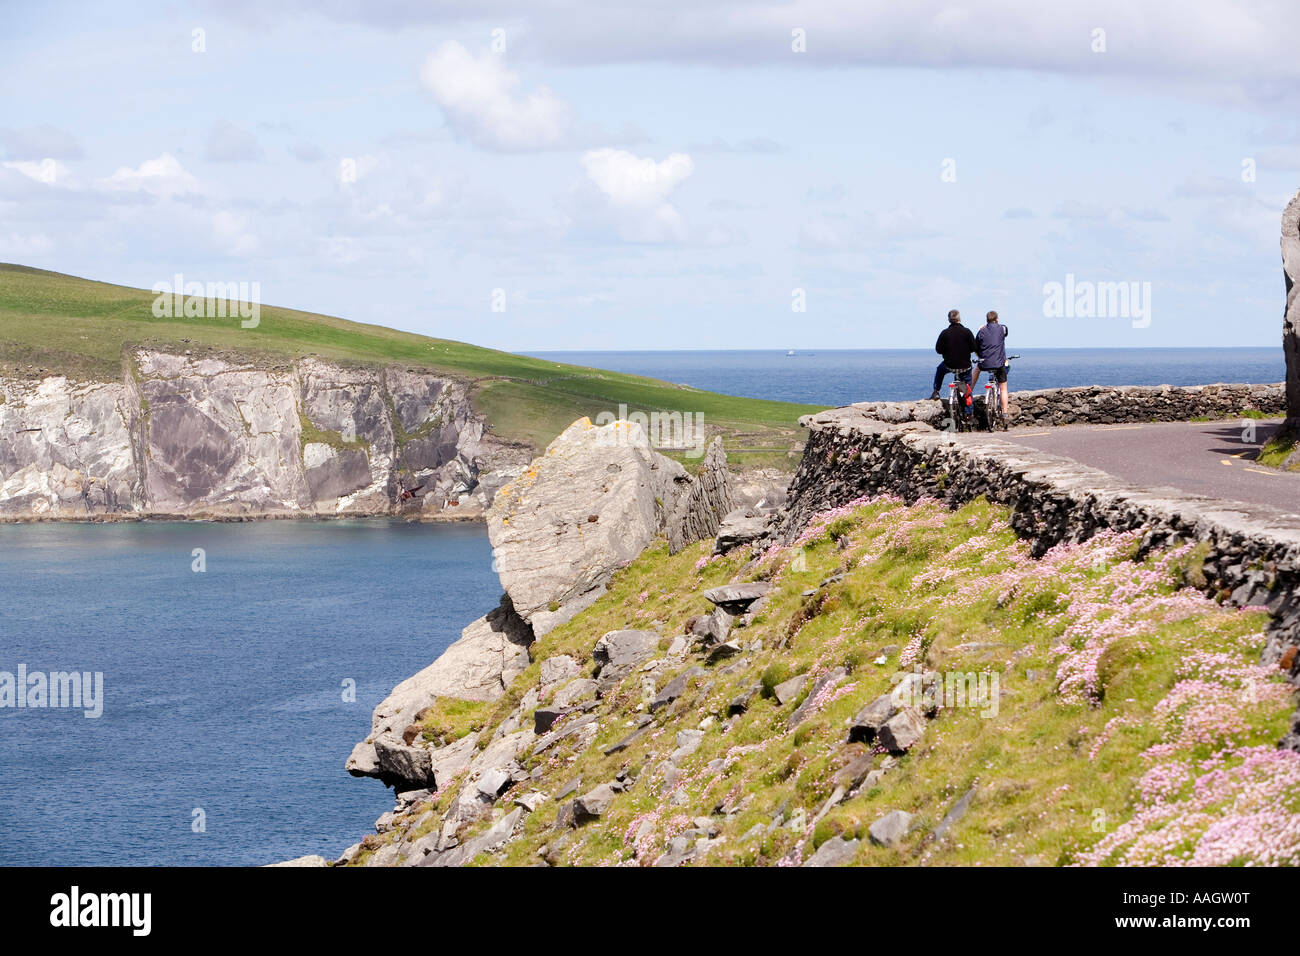 Ireland Kerry Dingle Peninsula Slea Head cyclists on coastal road looking to Dunmore Head - Stock Image